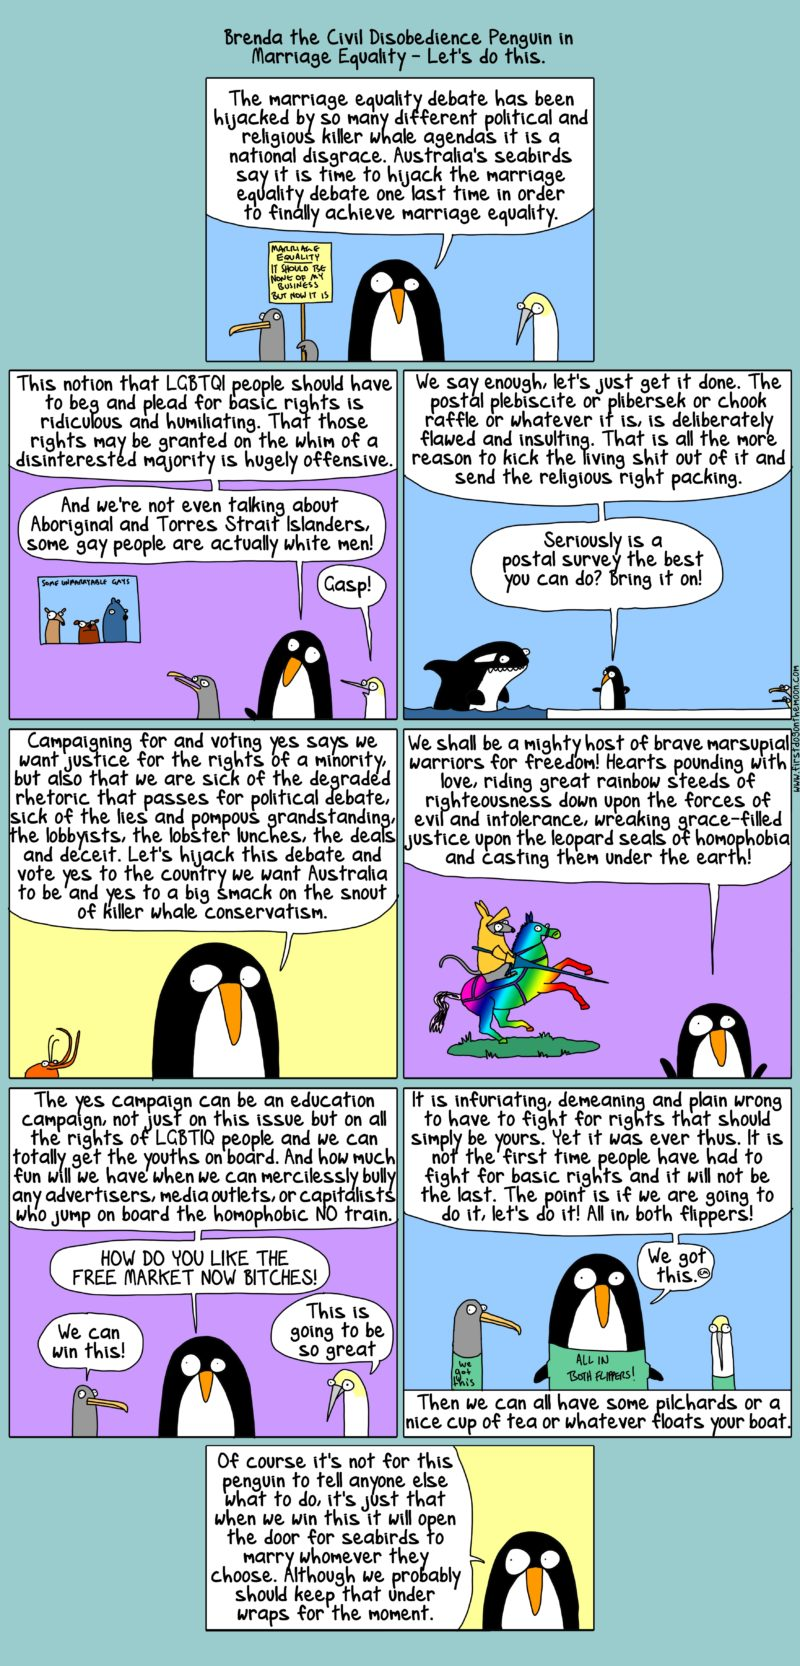 brenda on marriage equality : all in, both flippers!